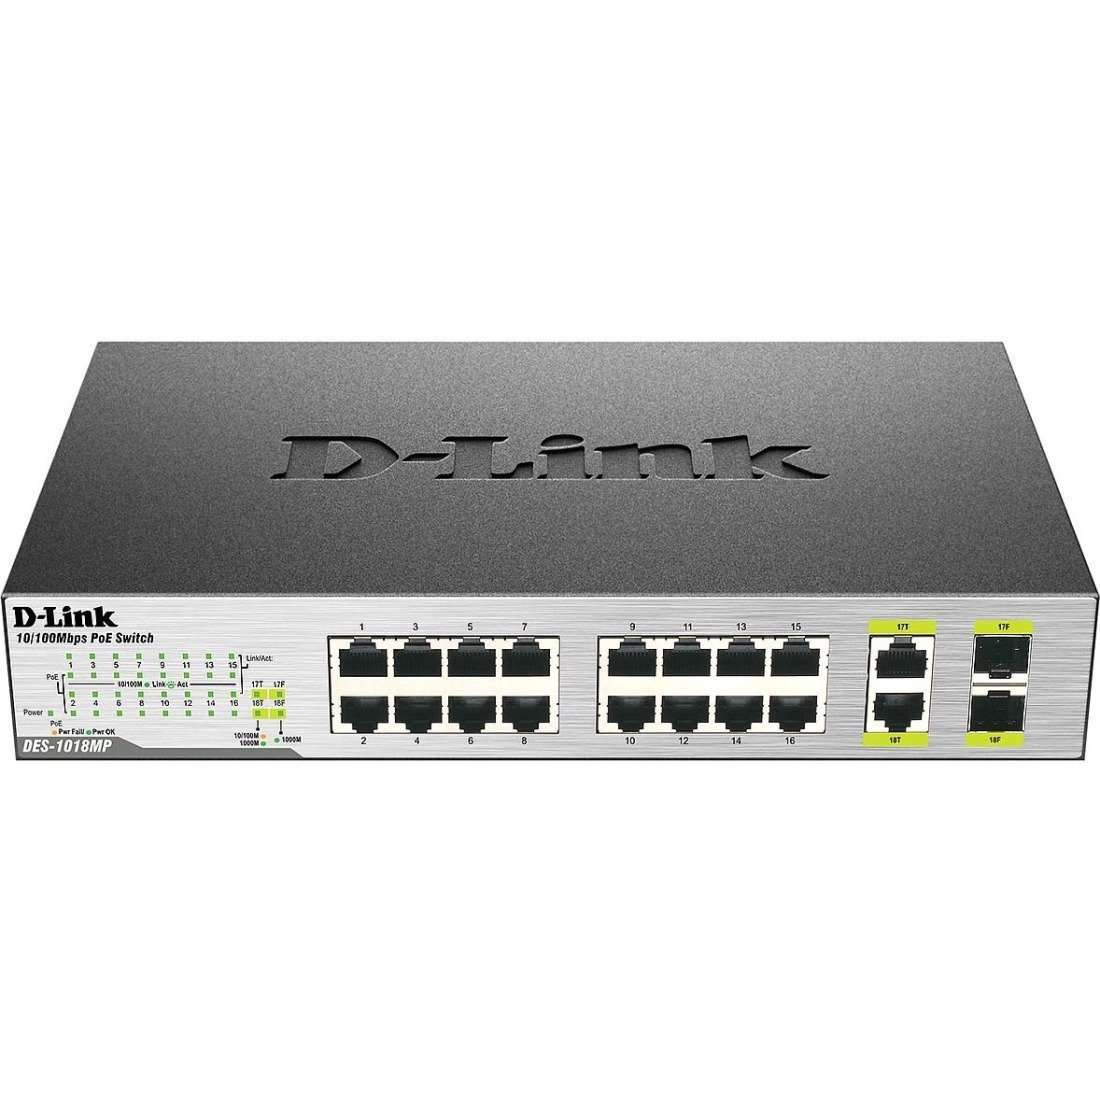 D-Link DES-1018MP 18-Port 10-100 Unmanaged PoE Switch Including 2 1000BASE-T-SFP Combo Ports